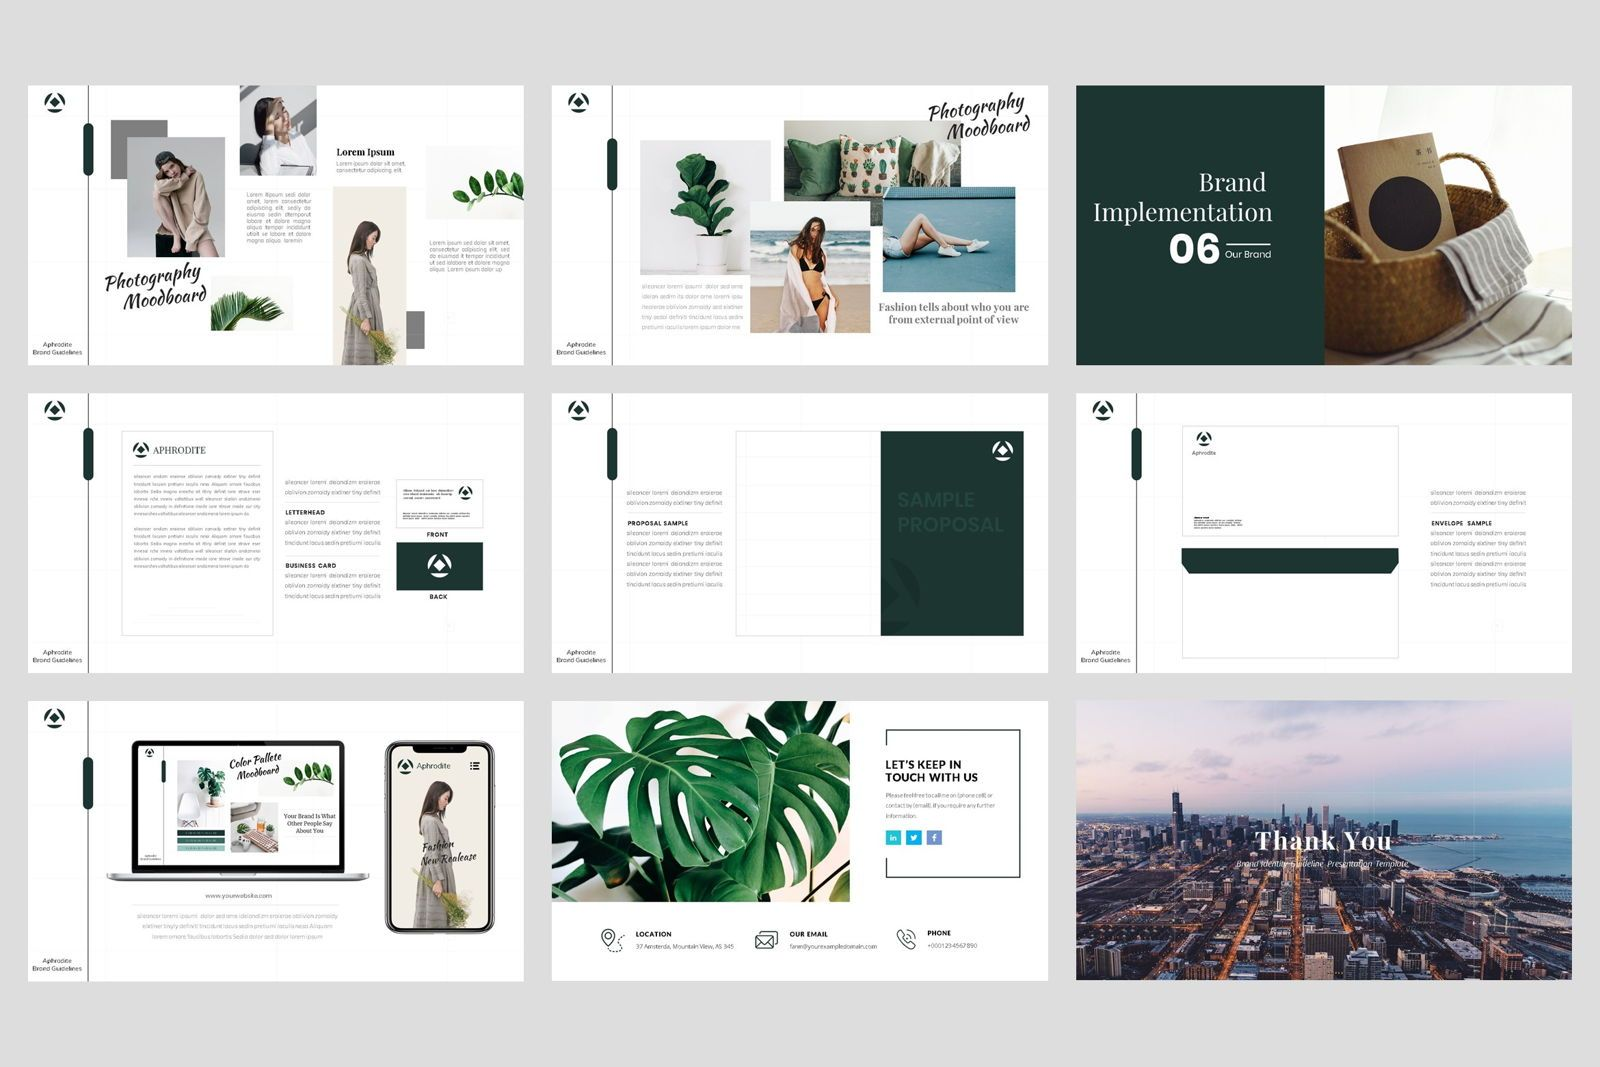 Brand Identity Guideline PowerPoint Template, Slide 5, 08594, Presentation Templates — PoweredTemplate.com